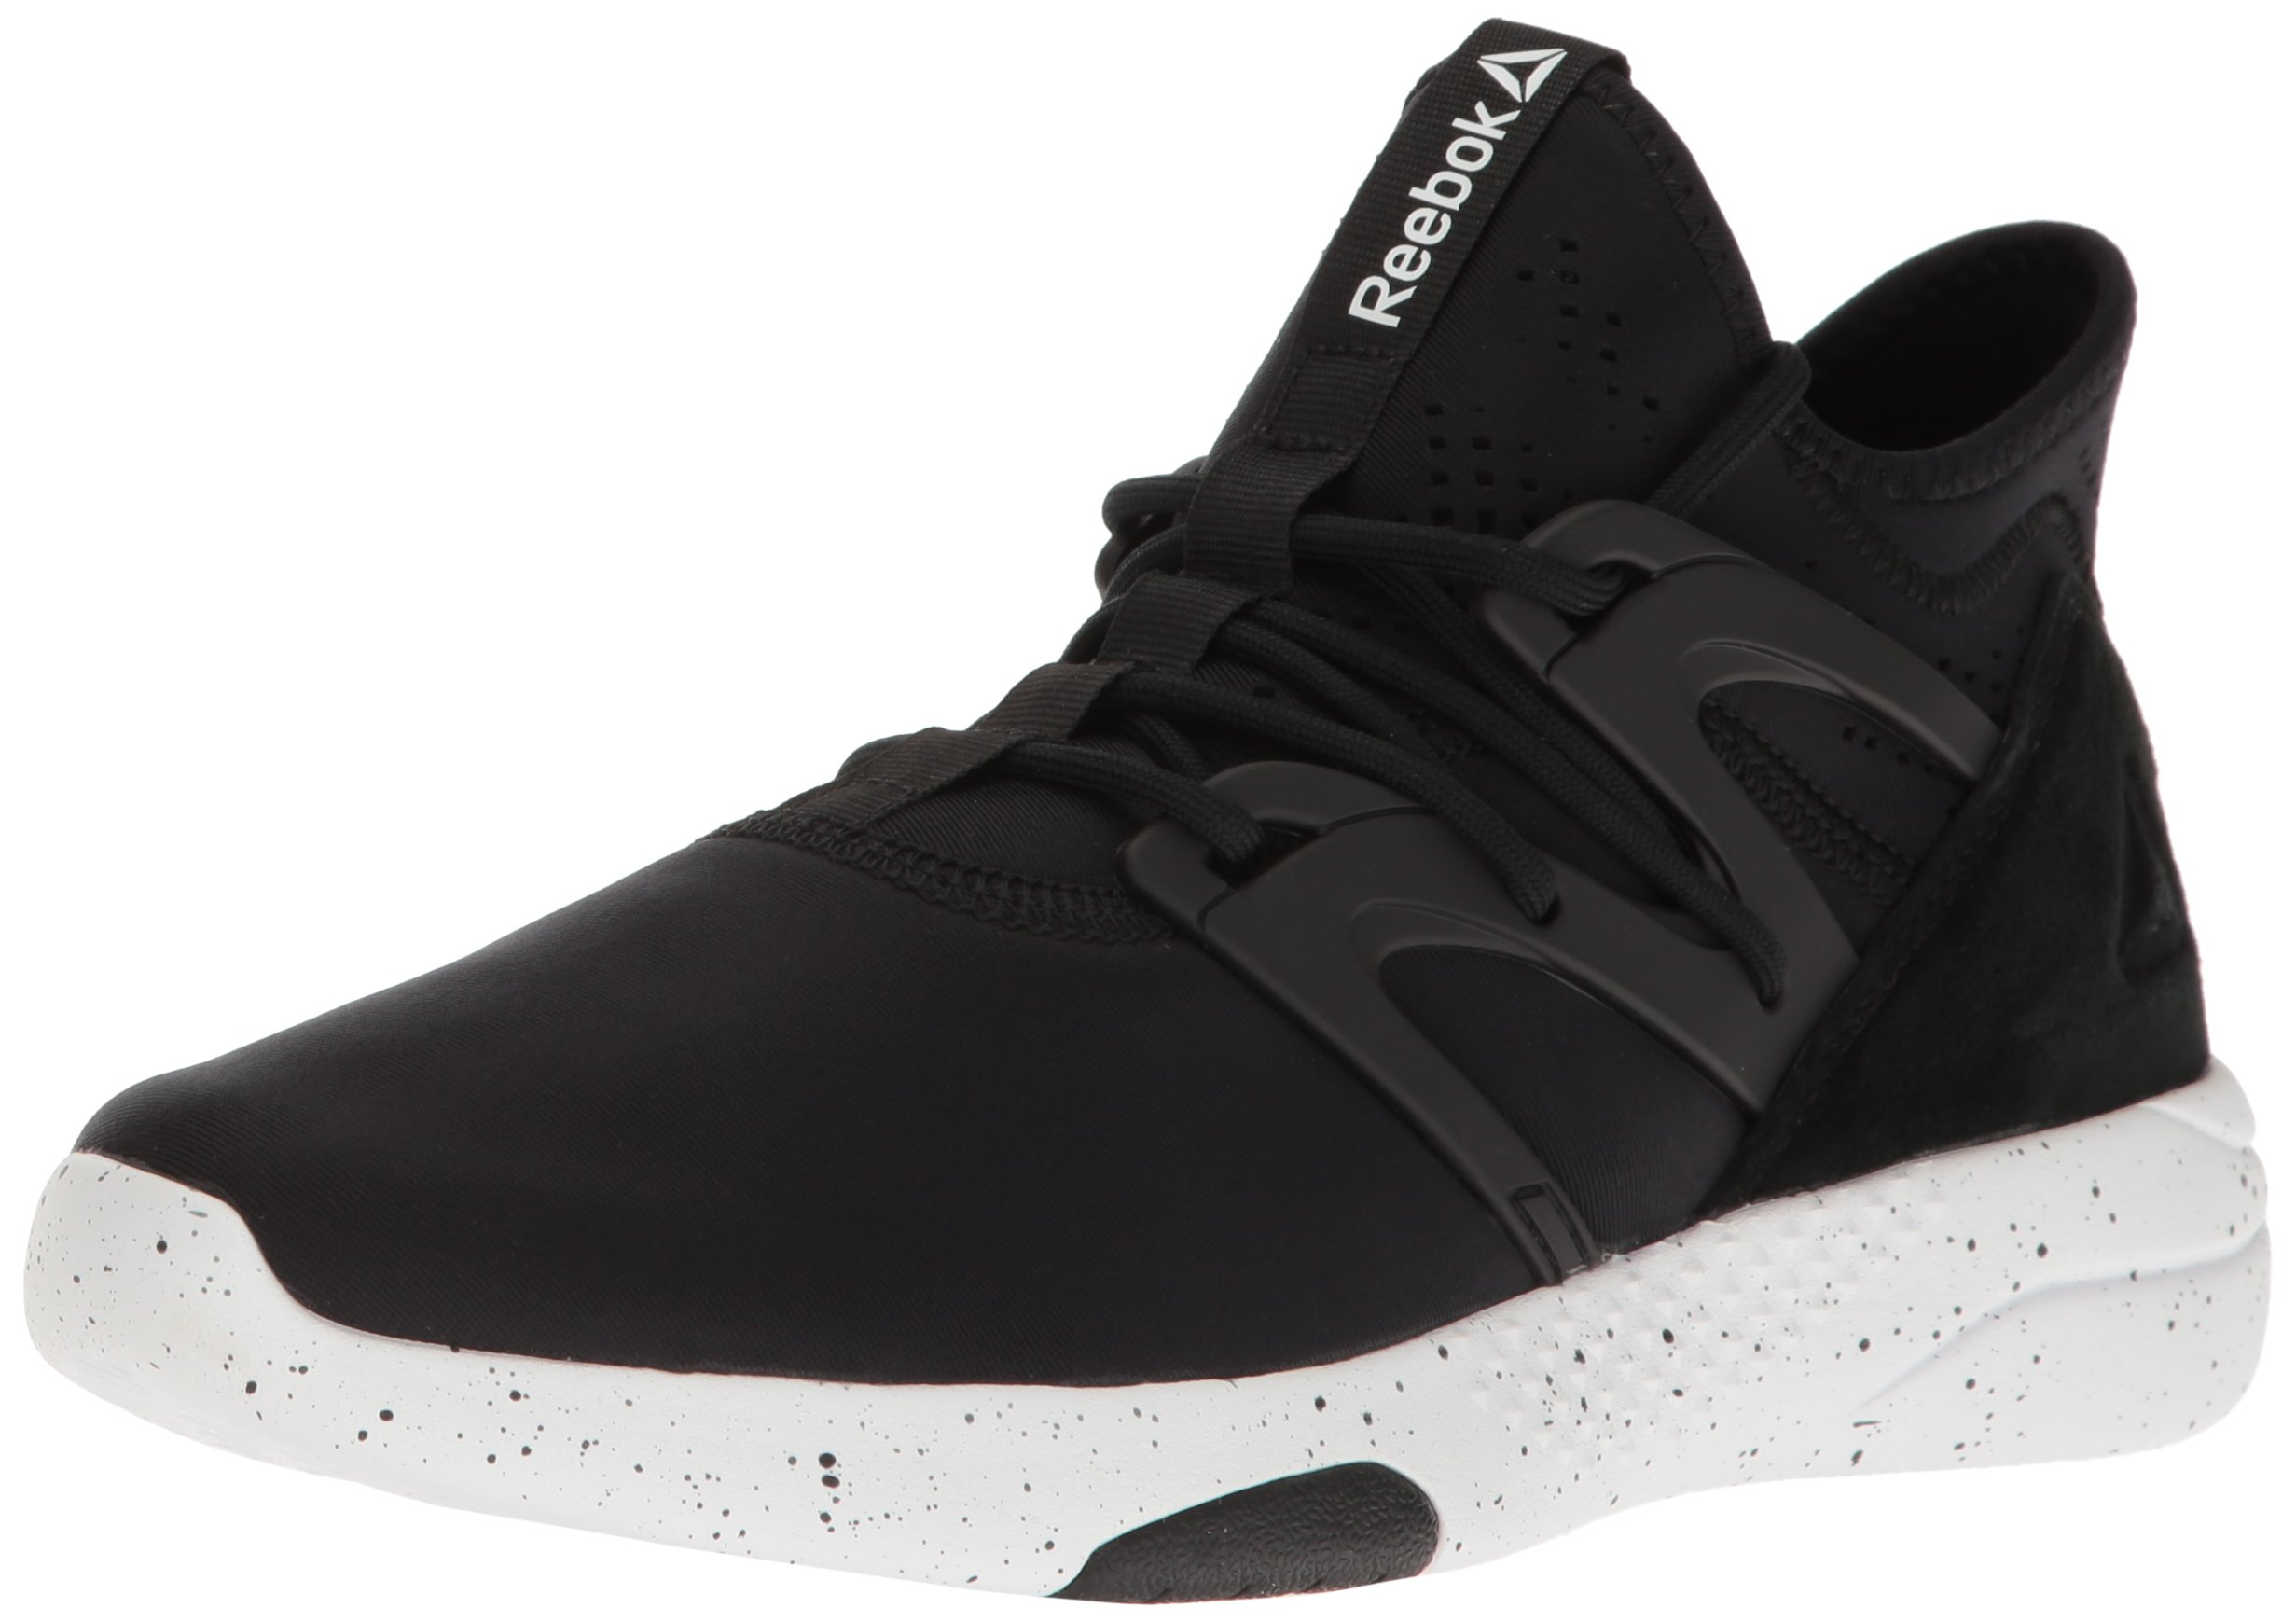 Reebok Women's Hayasu Dance Shoe, Black/White, 6.5 M US